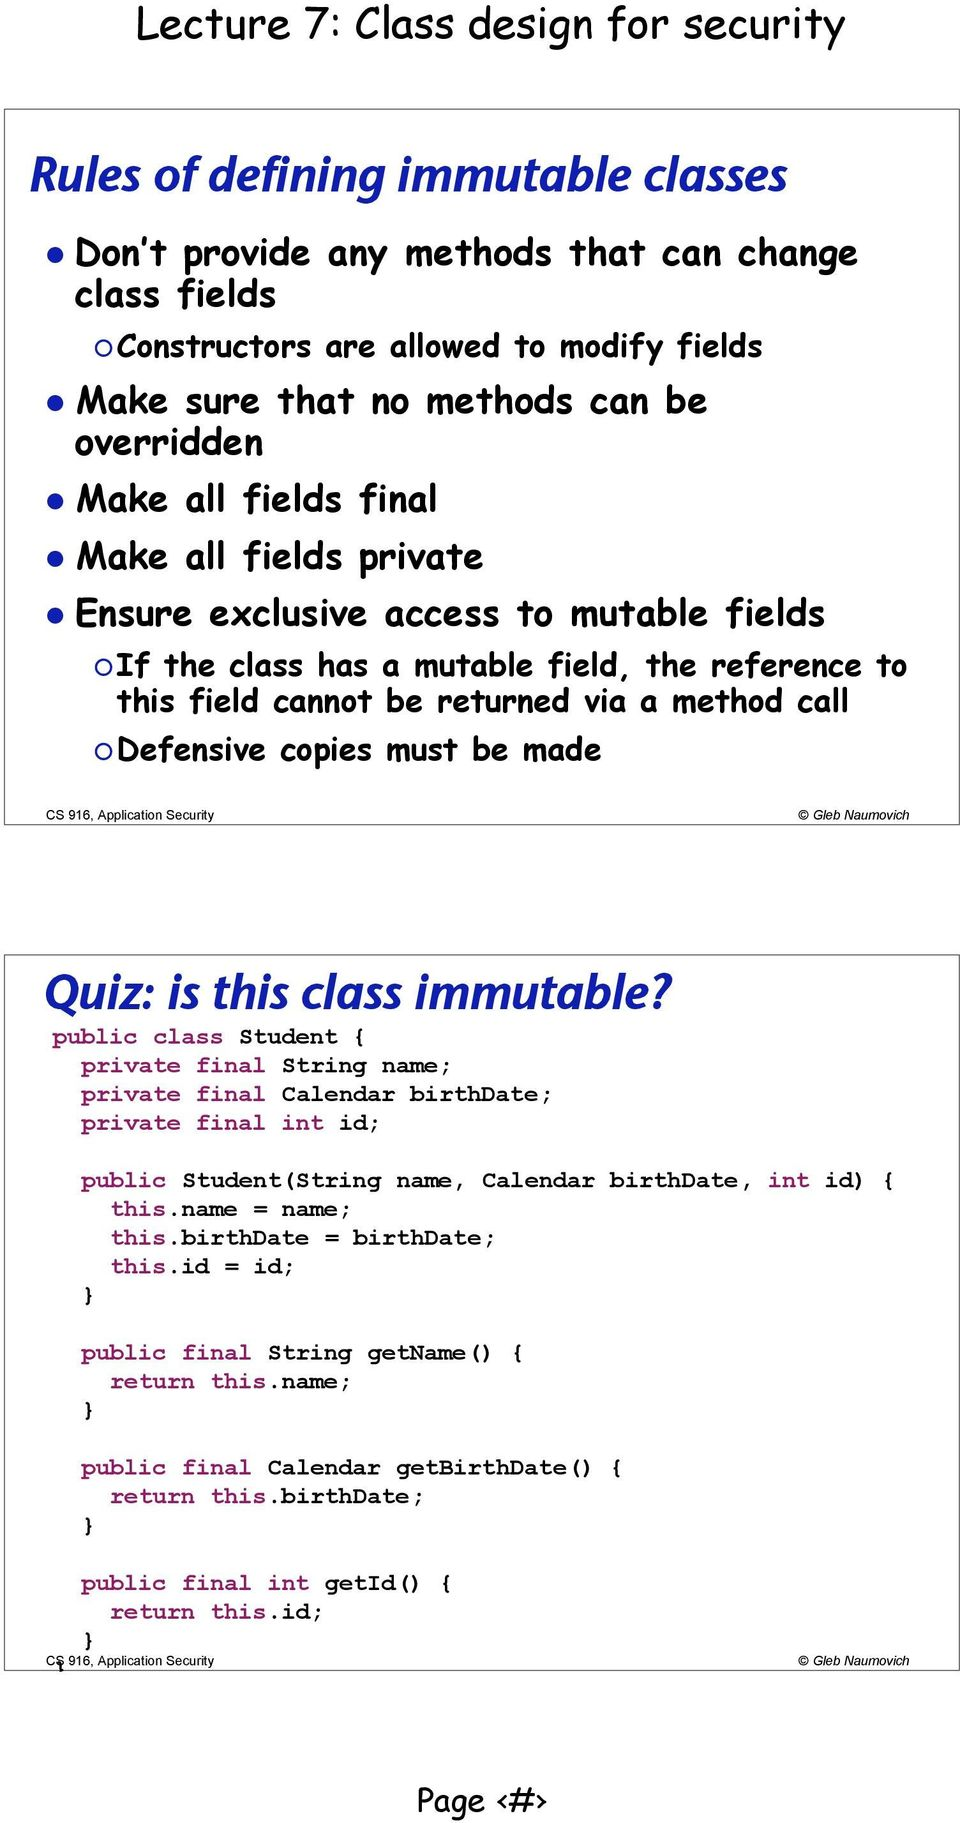 Quiz: is this class immutable? public class Student { private final String name; private final Calendar birthdate; private final int id; public Student(String name, Calendar birthdate, int id) { this.